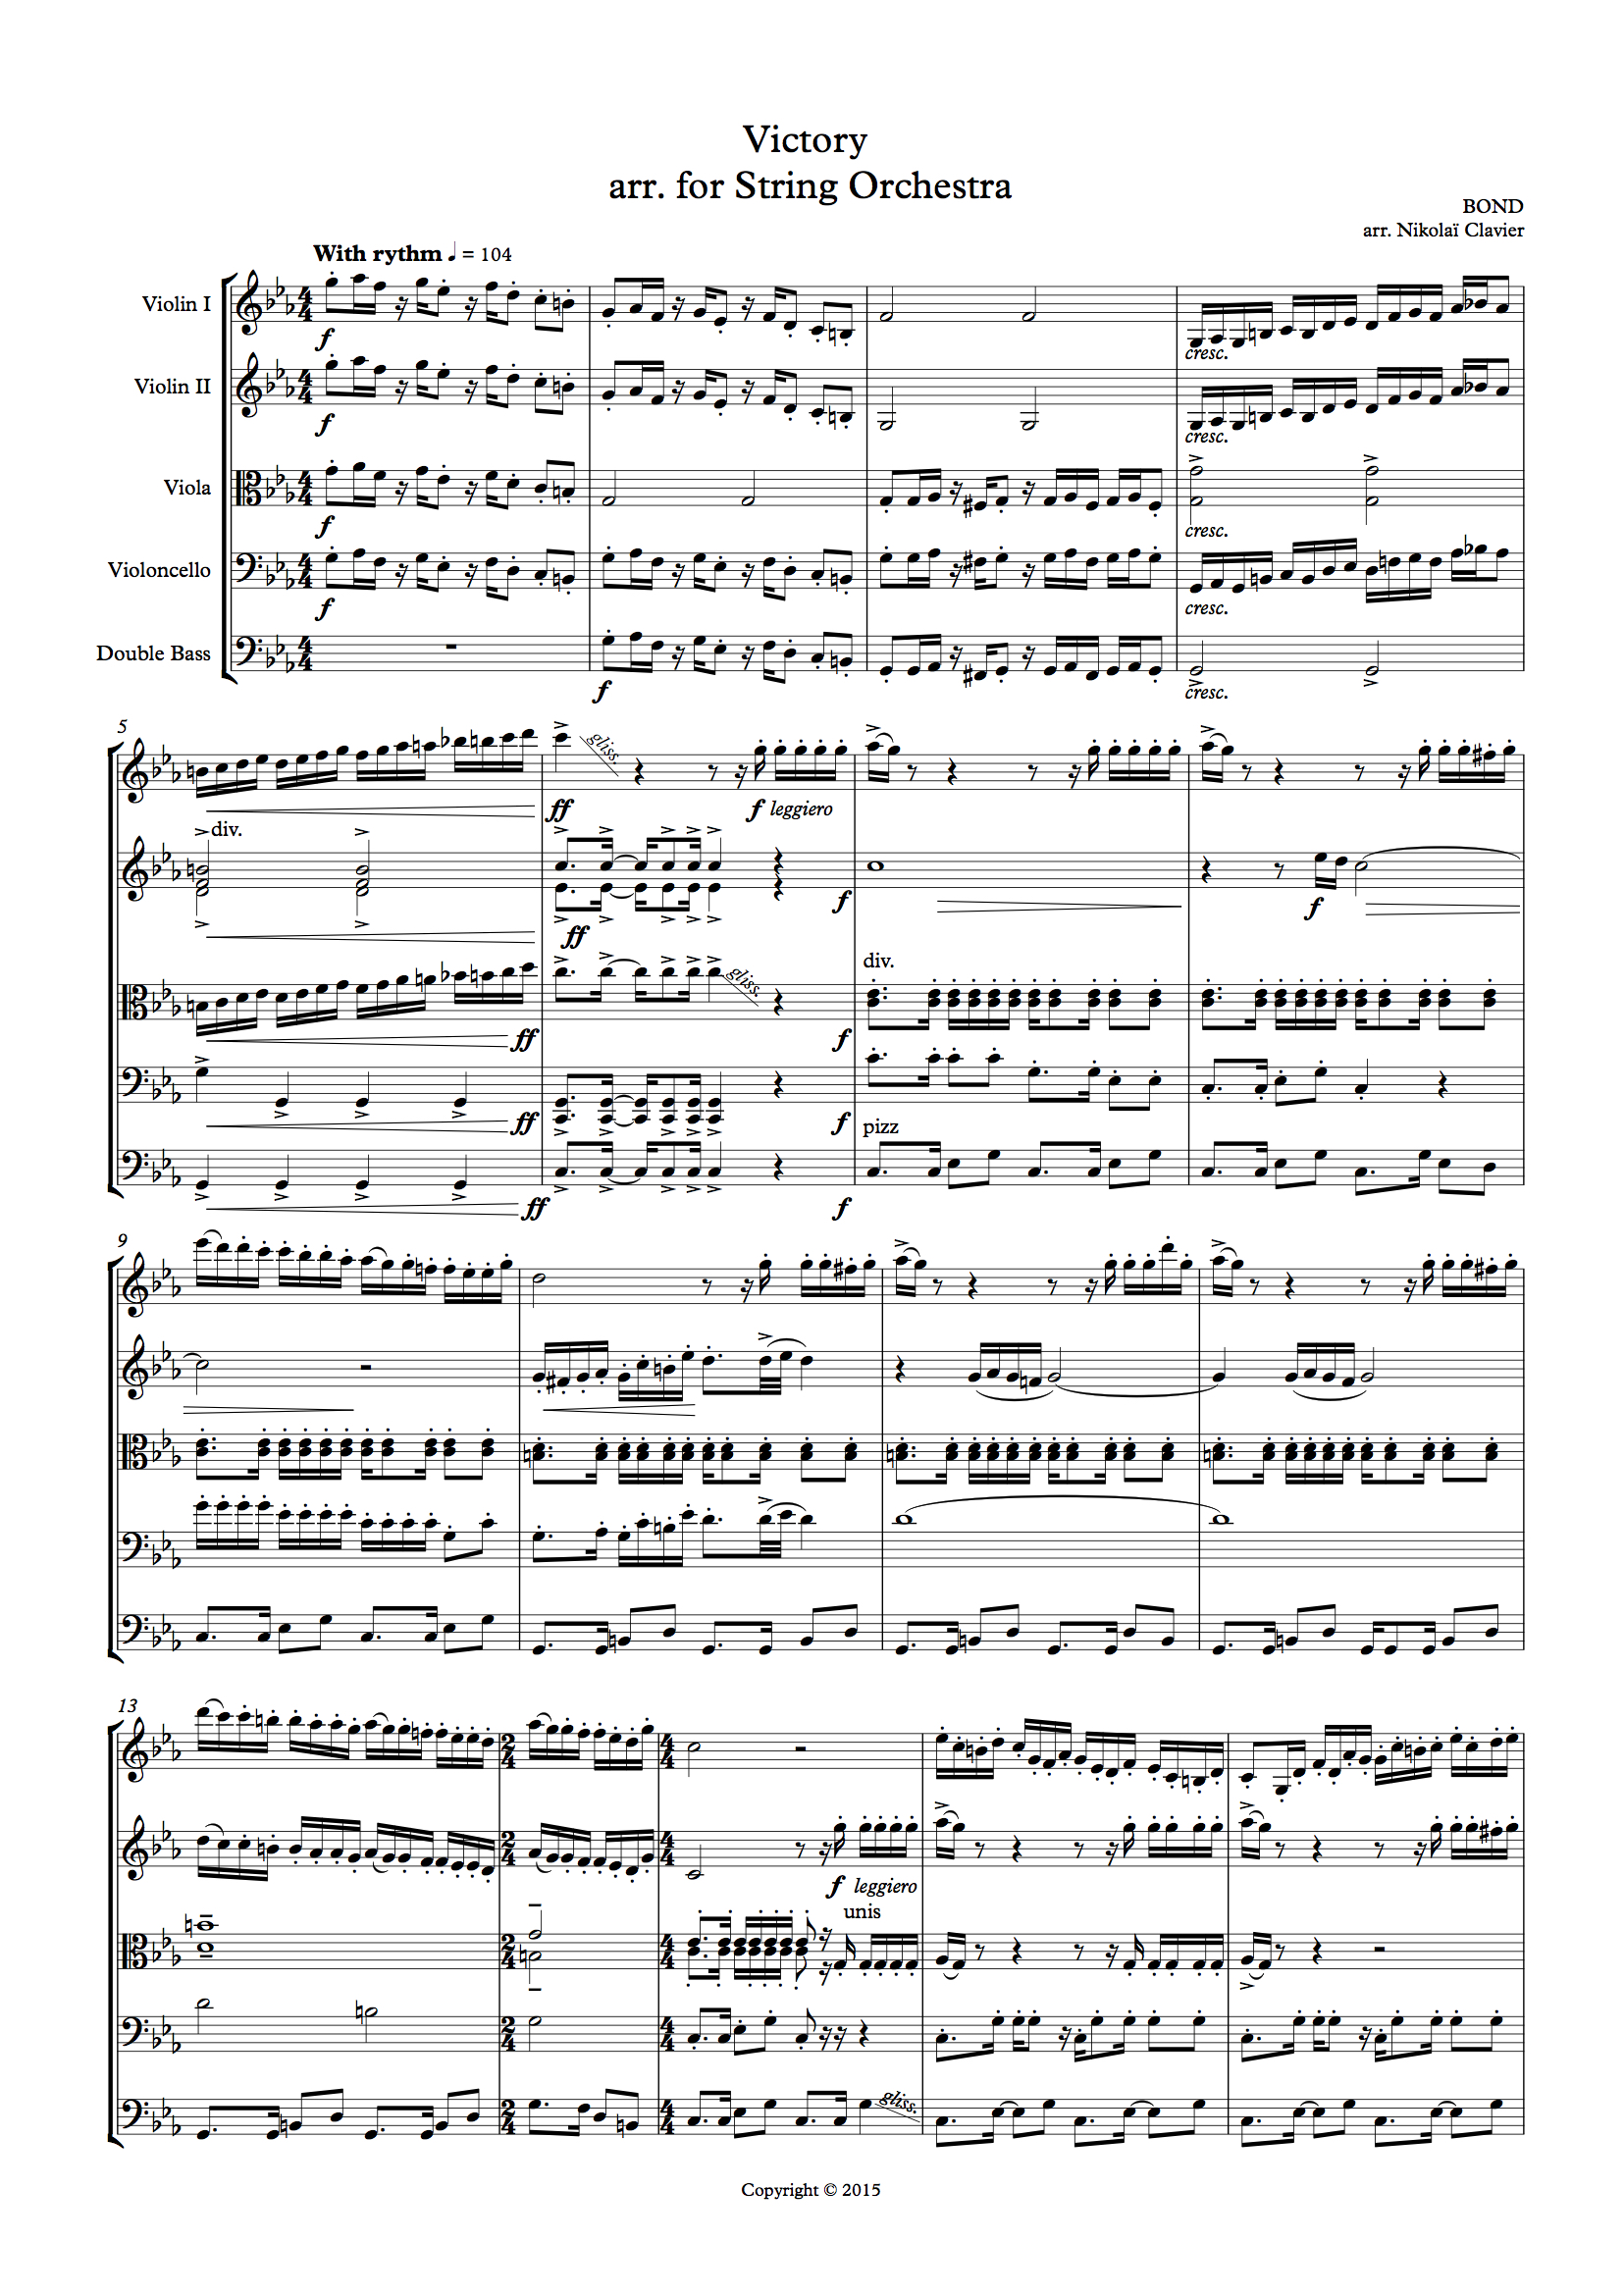 Bond Victory - for string orchestra (score and parts) (dragged)